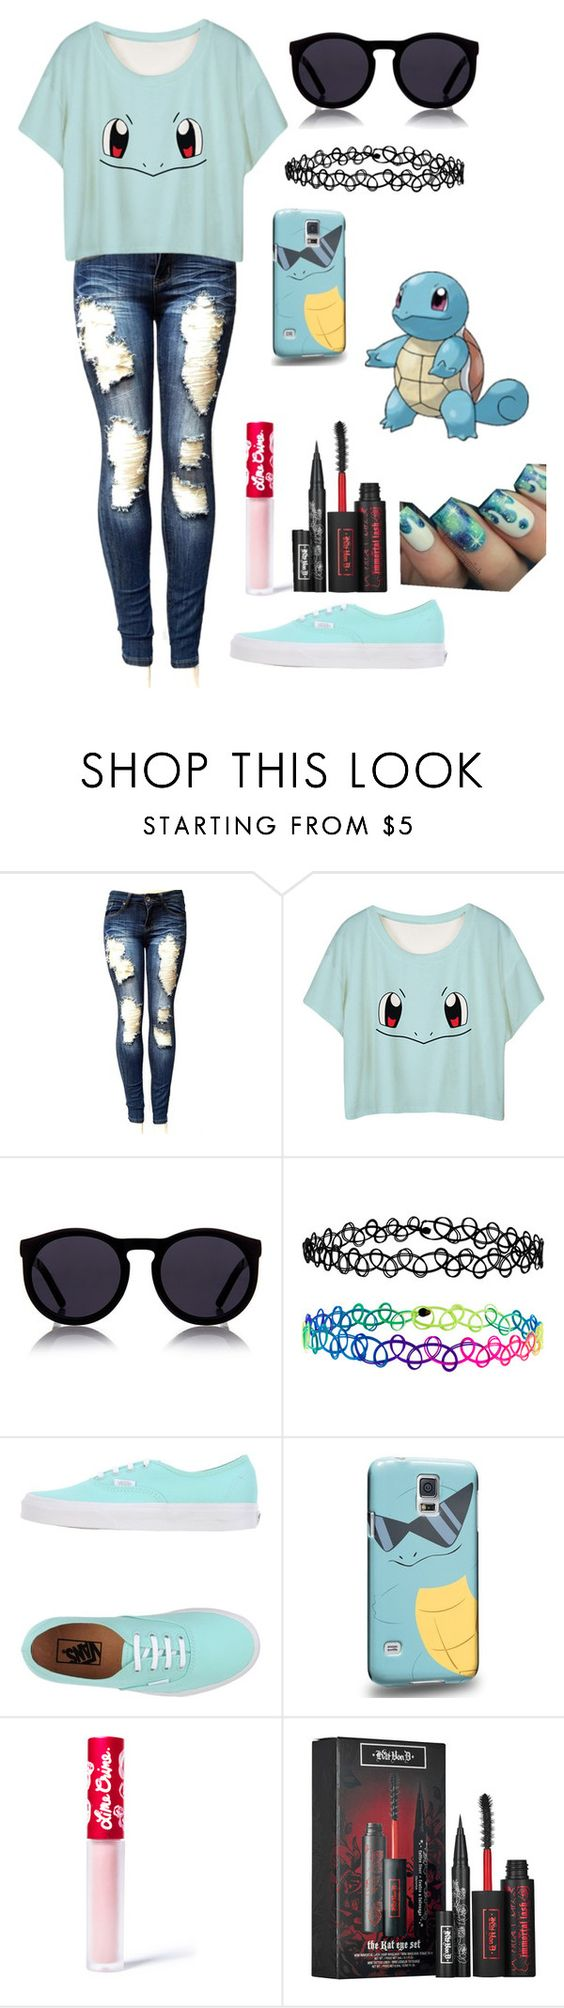 """""""Squirtle Squad"""" by bandom-stuff ❤ liked on Polyvore featuring Le Specs, Accessorize, Vans, Samsung, Lime Crime and Kat Von D"""